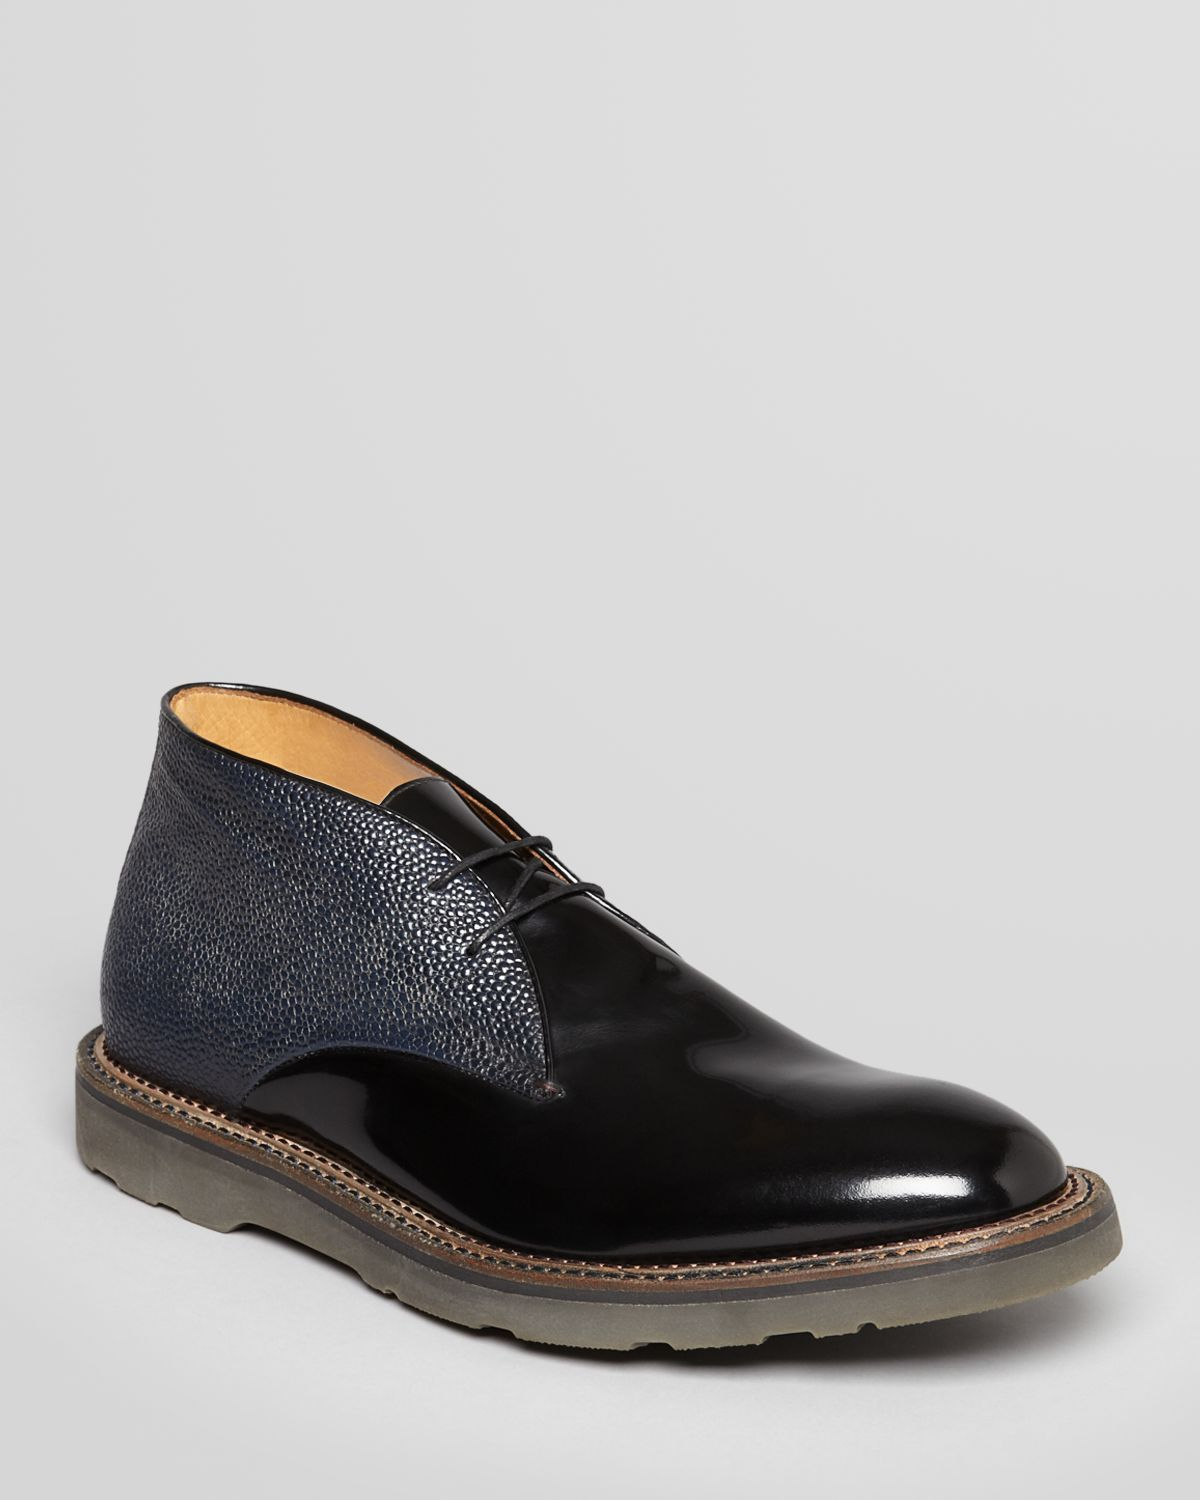 e27d09a836a Paul Smith - Hunter Leather Chukka Boots (Black/Navy) | Shoes I Own ...